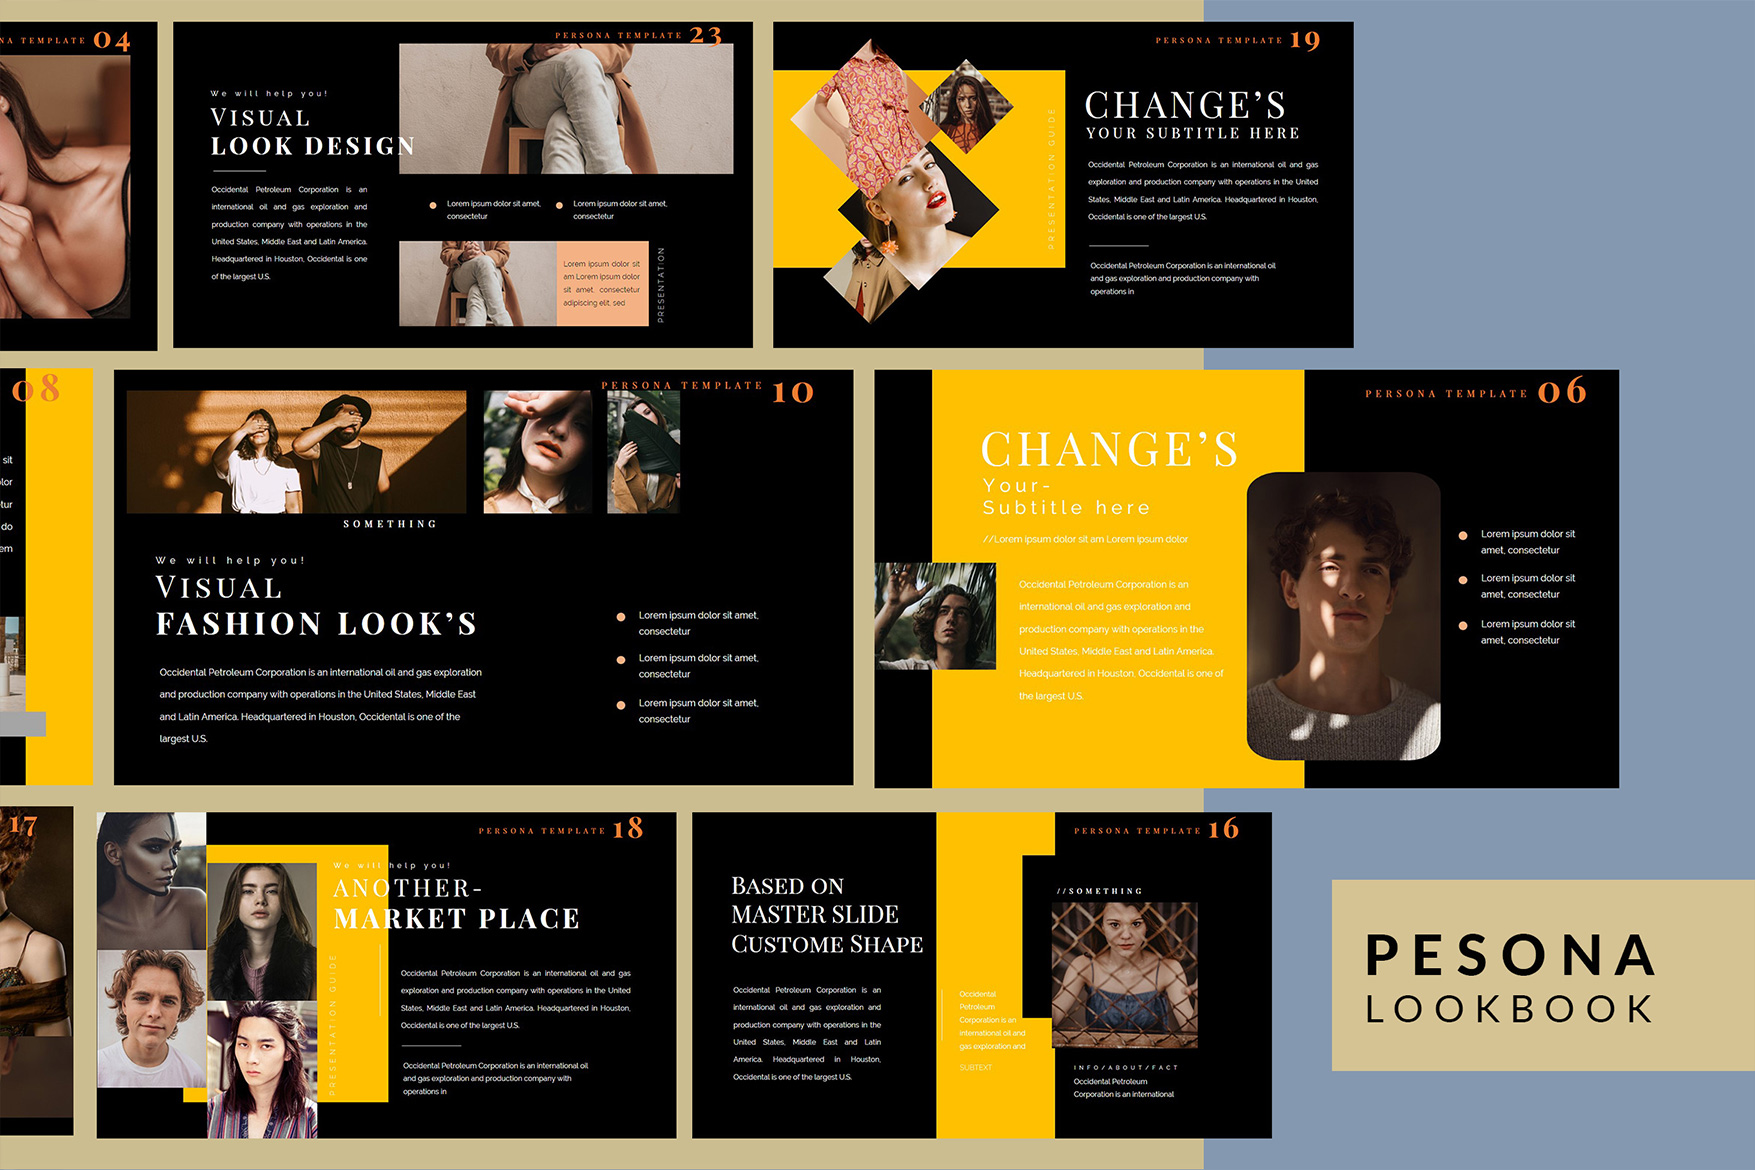 Pesona Dark Lookbook Keynote Template example image 3